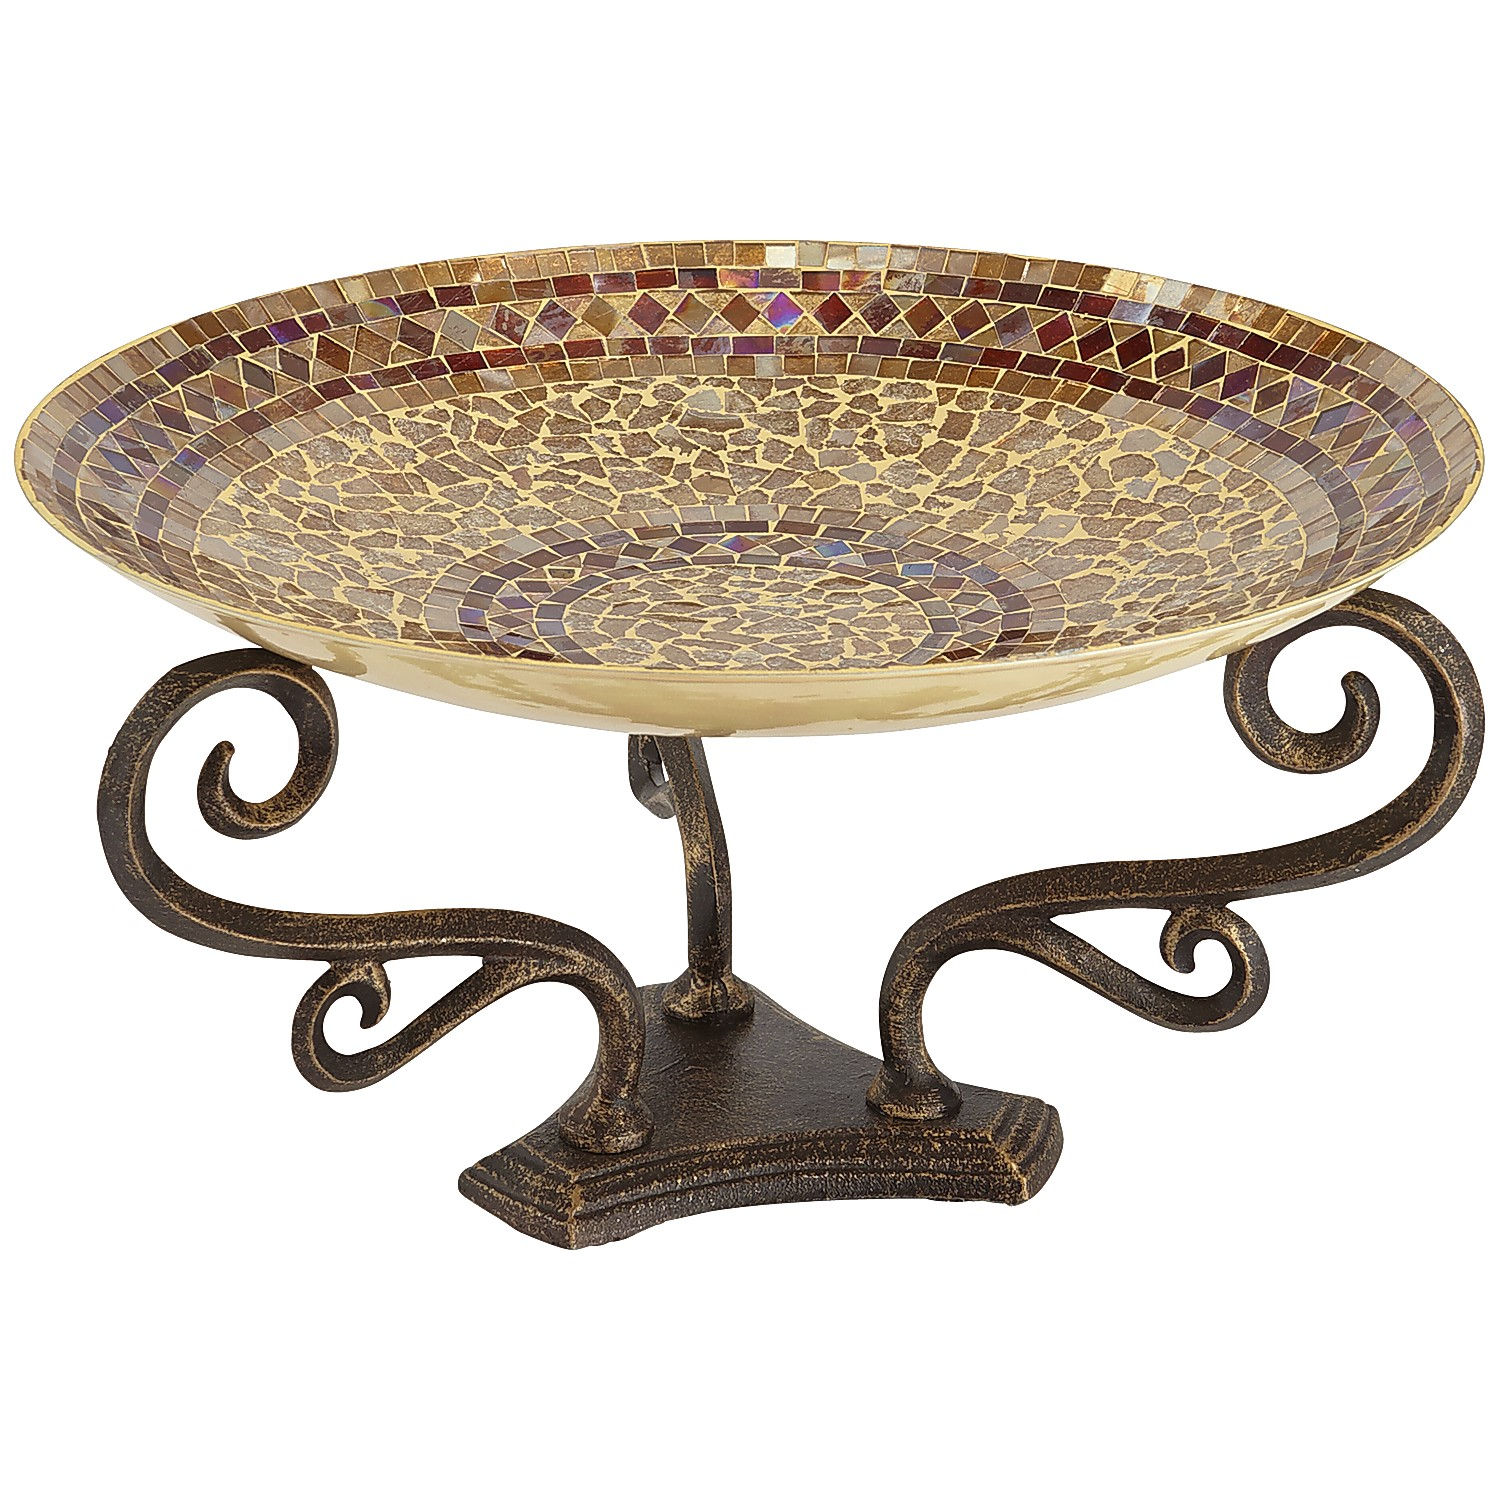 Champagne Decorative Mosaic Bowl with Stand